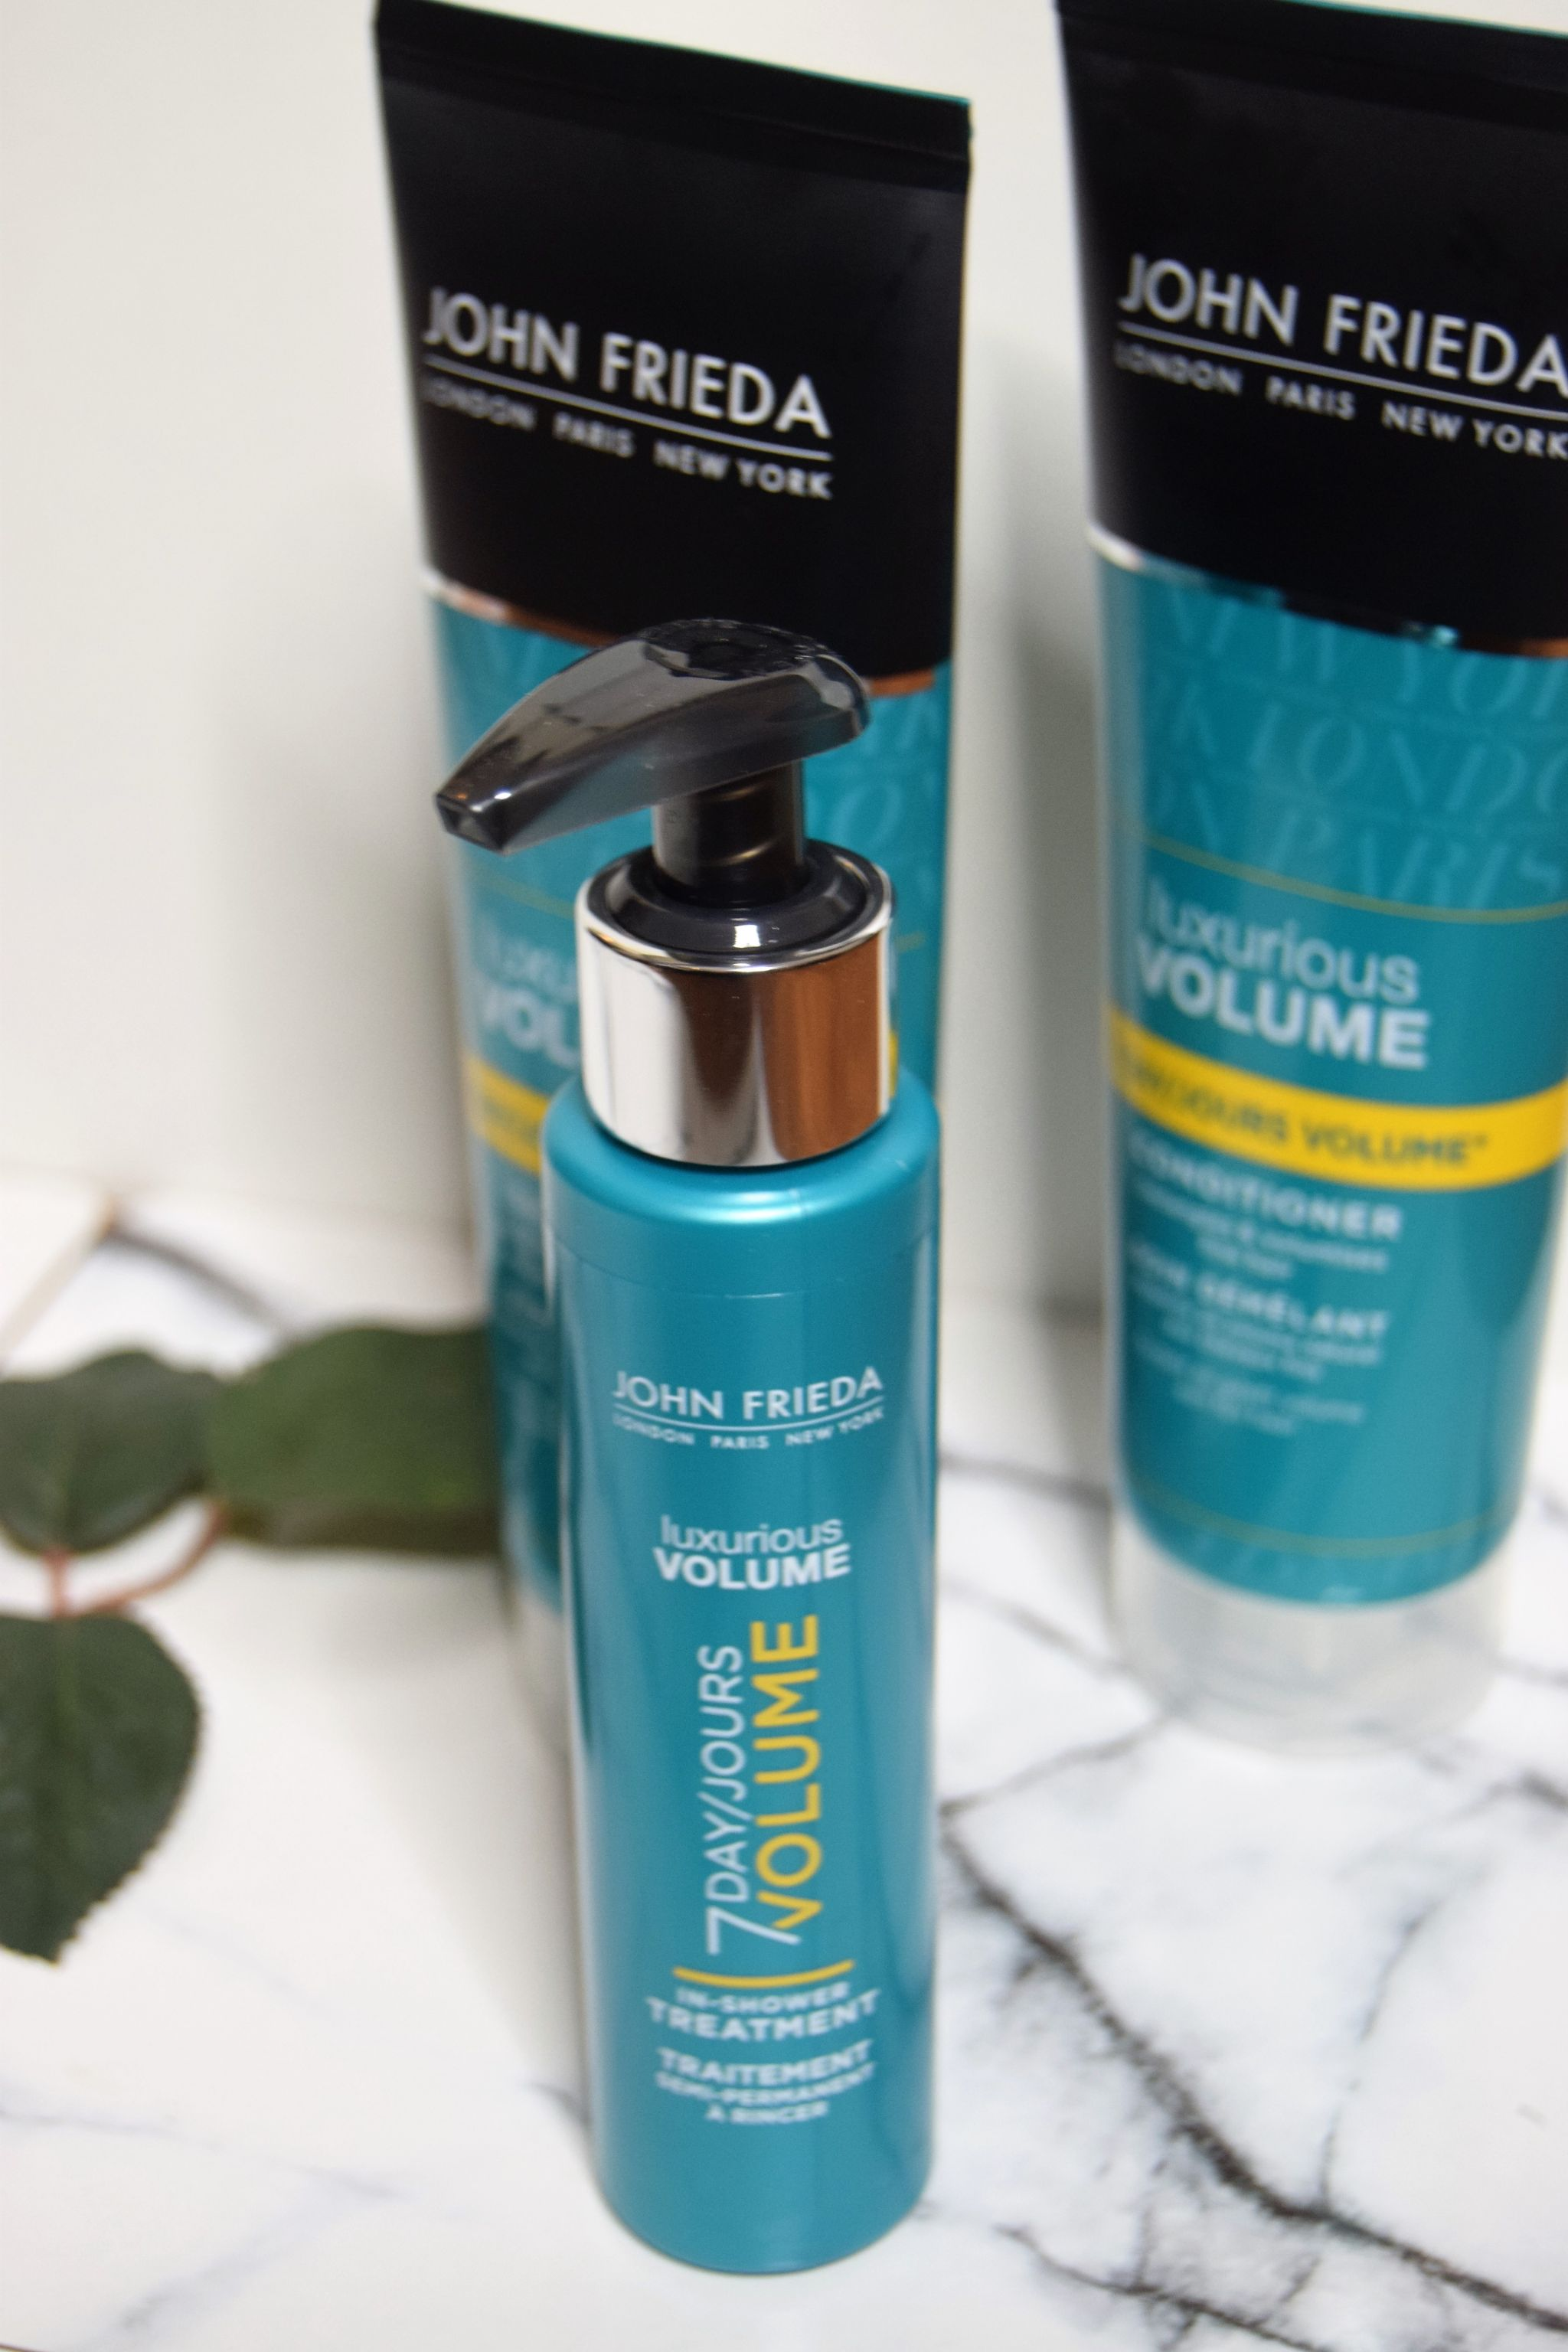 DSC 3287 1 1440x2160 - Is Your Hair Ready For The Winter? John Frieda Luxurious Volume Review